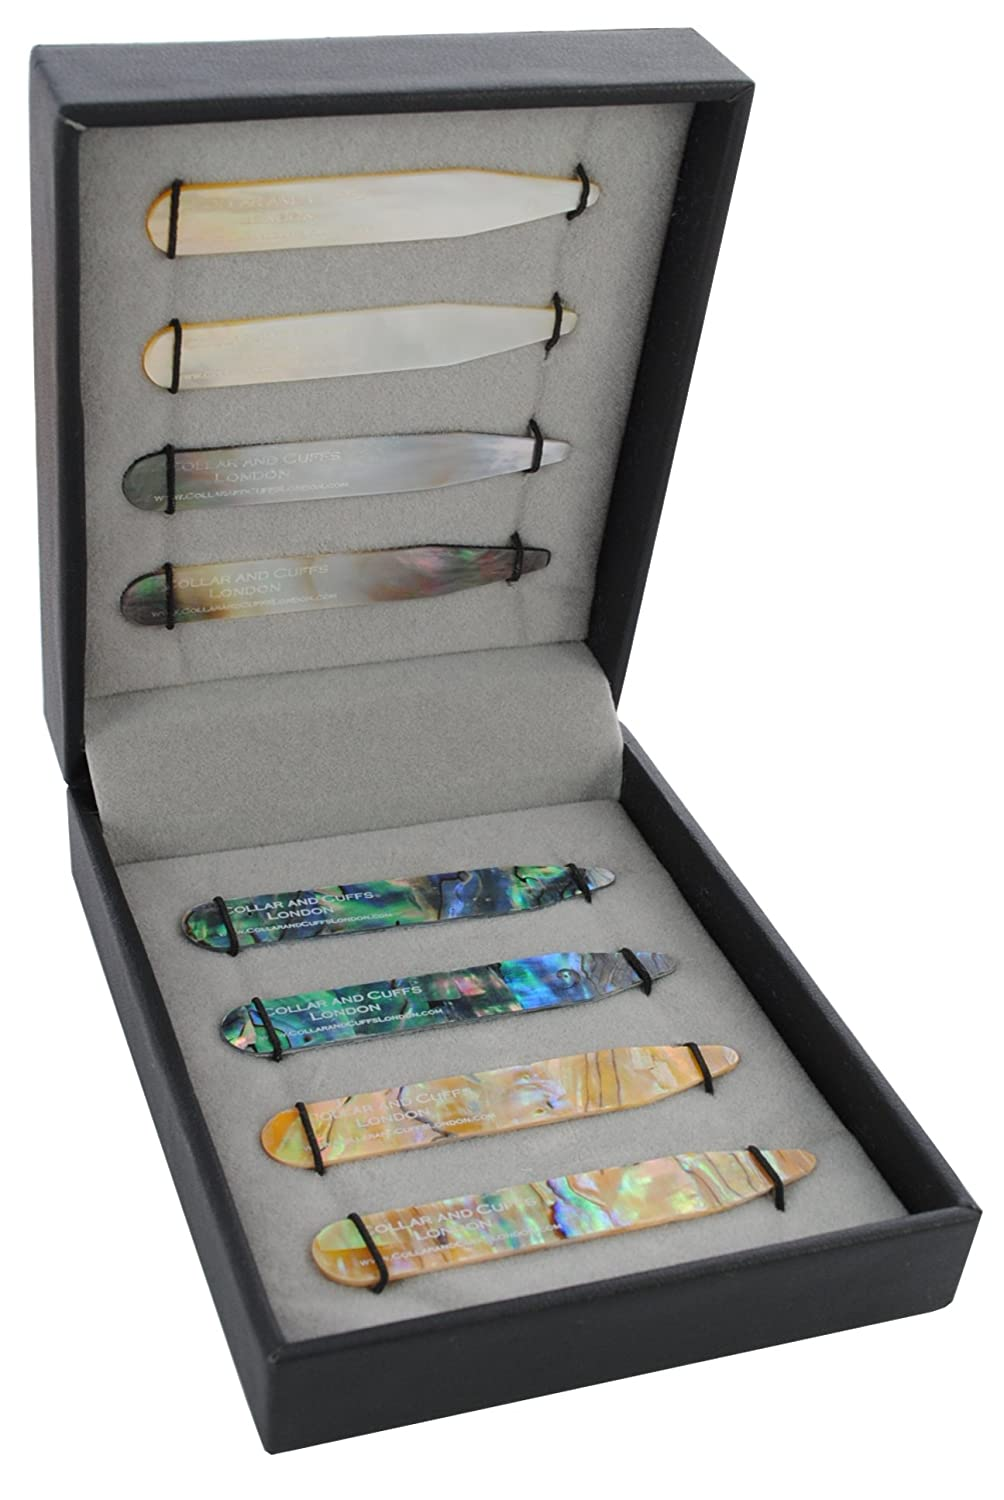 COLLAR AND CUFFS LONDON - 8 Shirt Collar Stiffeners - 4 MOTHER OF PEARL DESIGNS, 2 SIZES - 2.2 2.35 - Green Brown Gold and Black Colours - With Luxury Presentation Gift Box - 4 pairs COLLARANDCUFFSLONDON8SETS